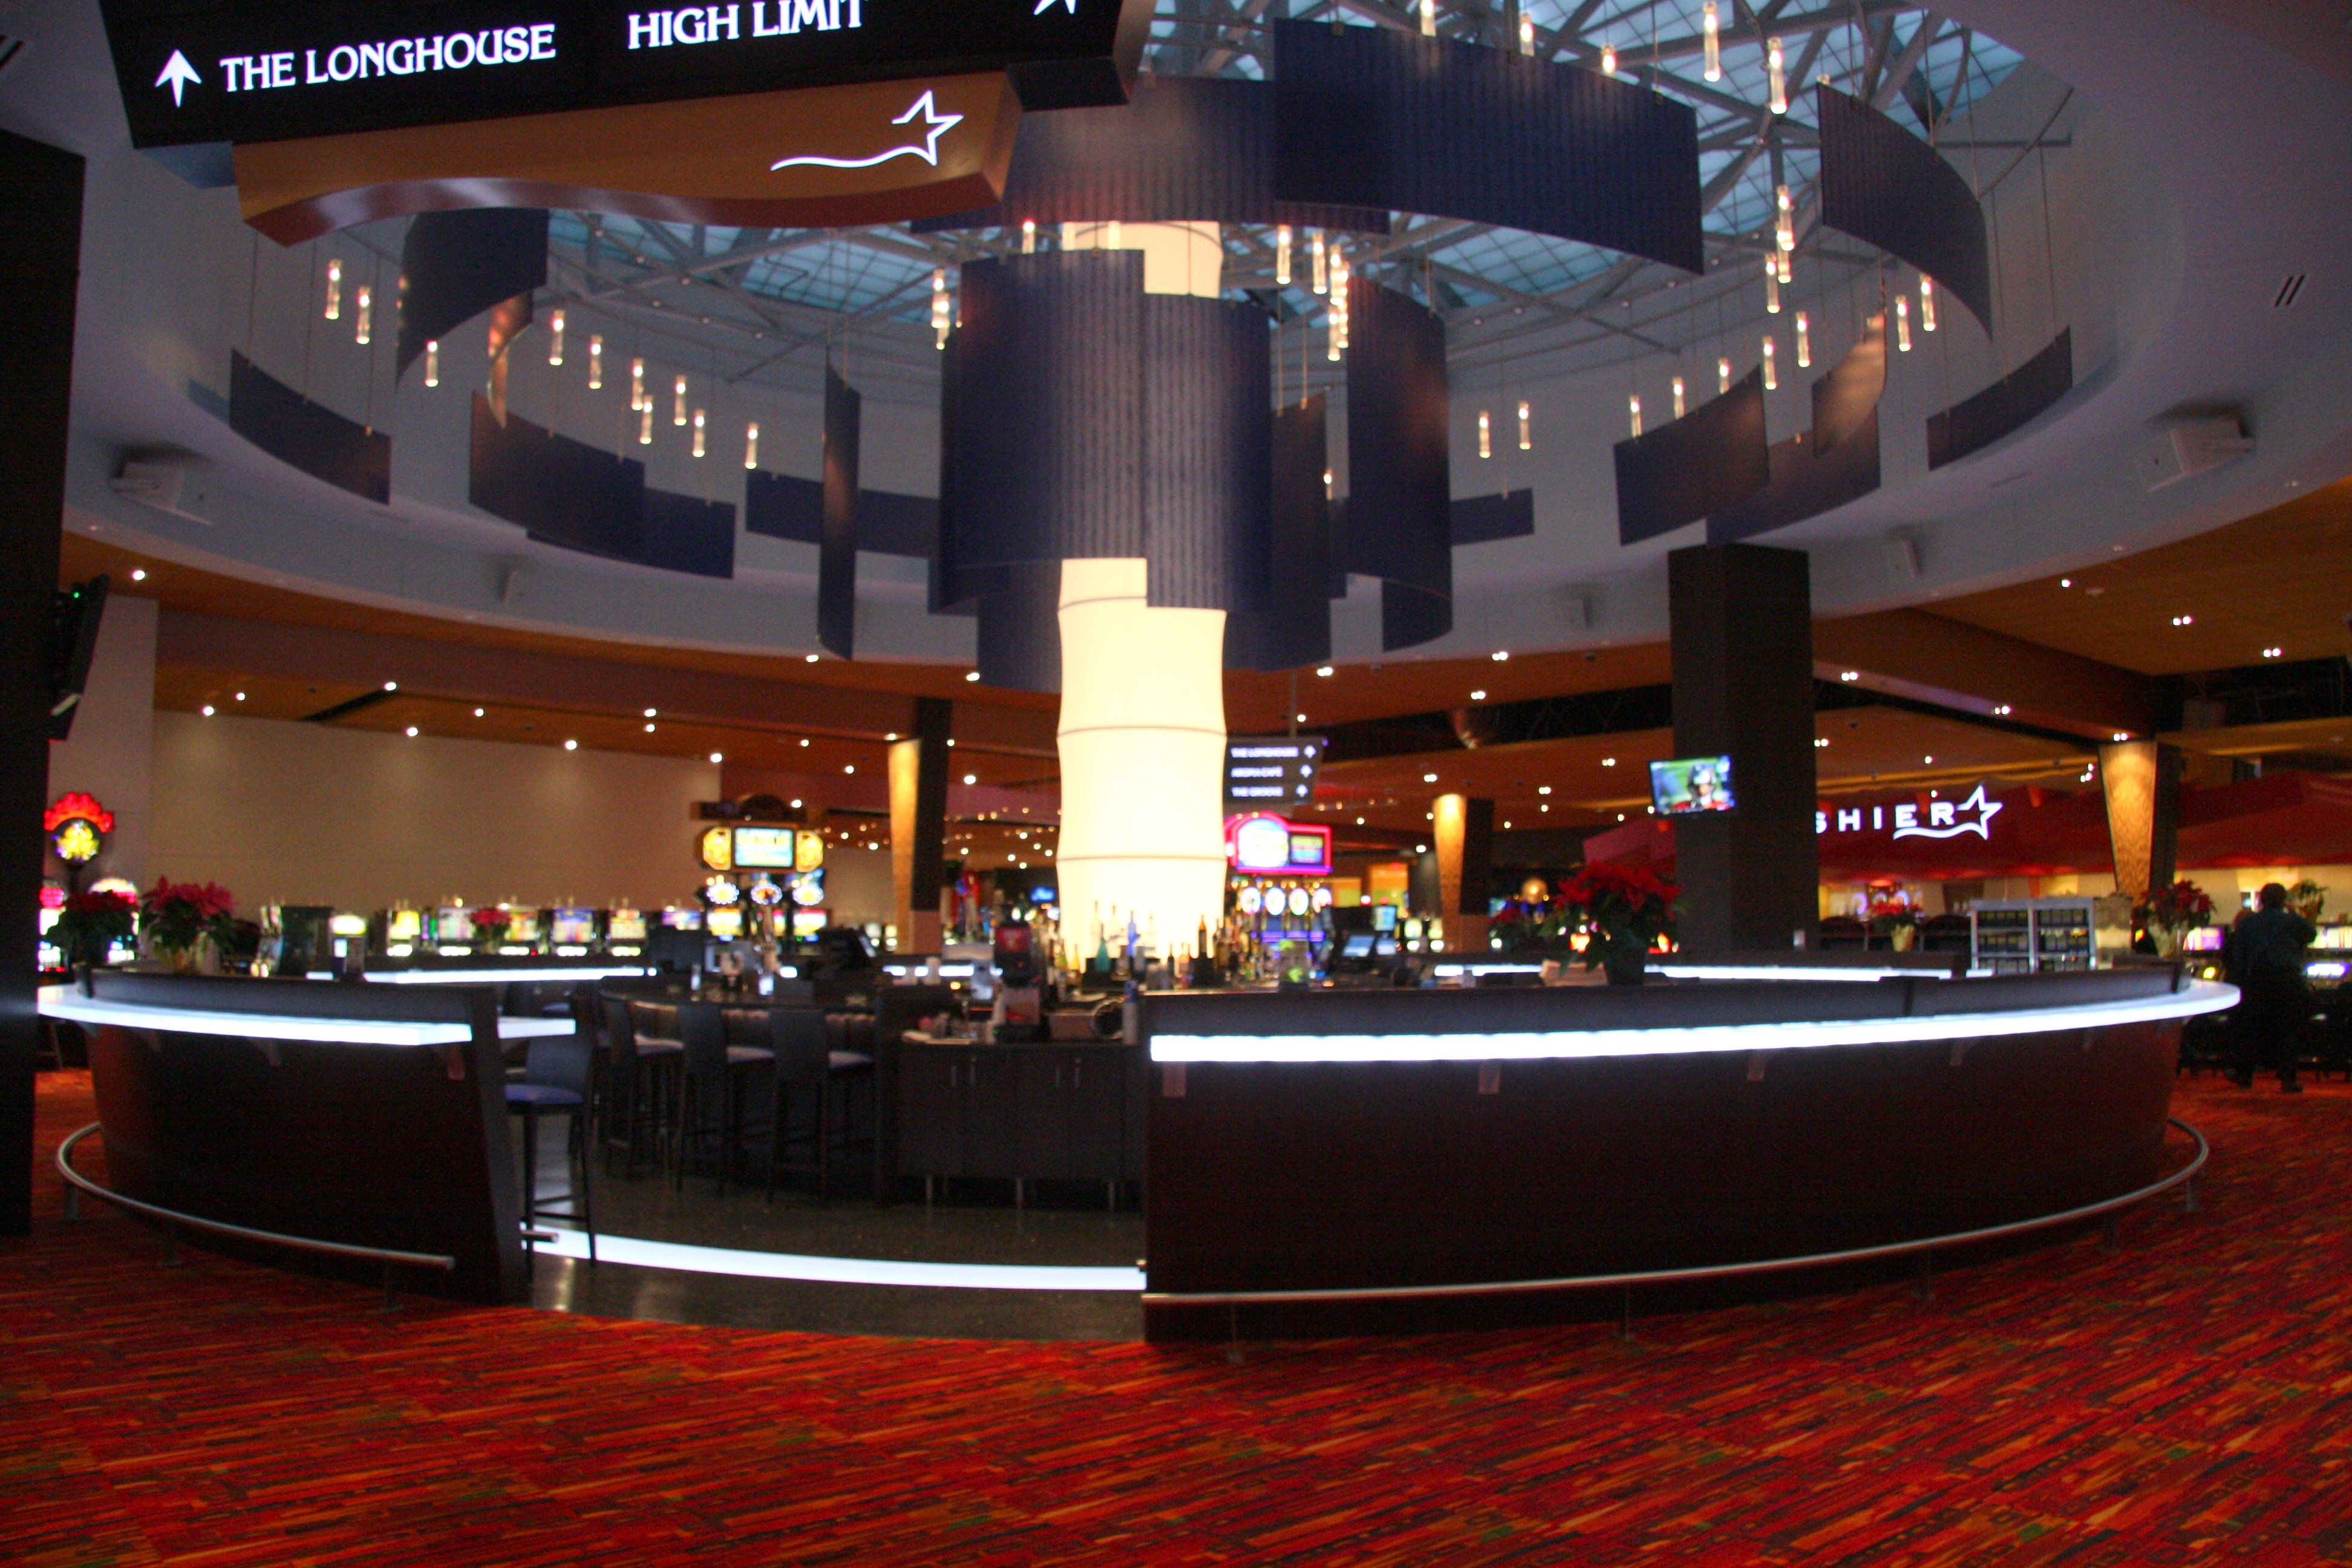 Casino interior with red floors